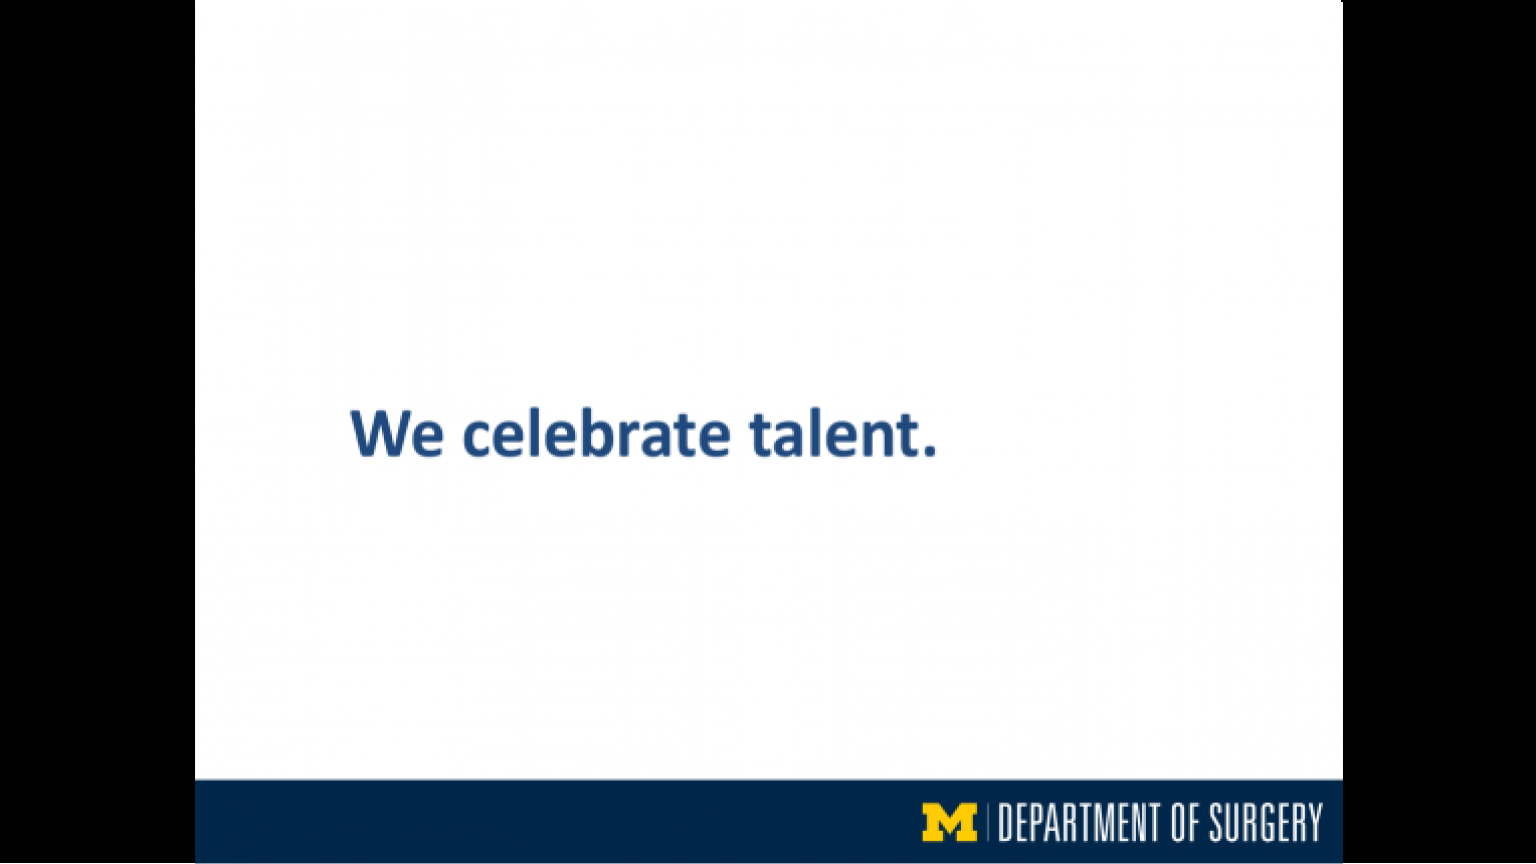 """""""We celebrate talent"""" - sixteenth slide of """"This Is What We Stand For"""" presentation"""